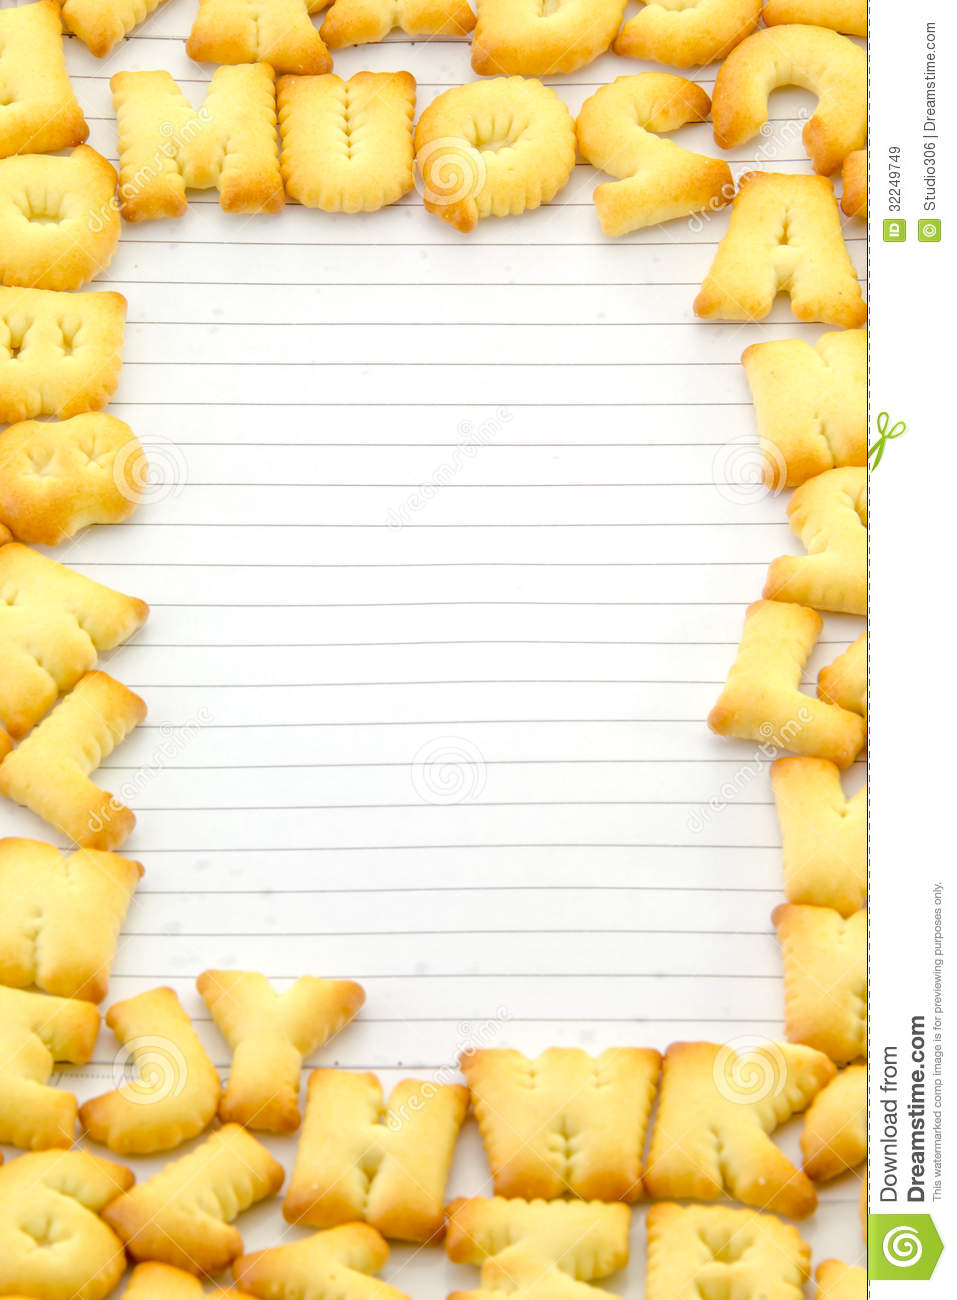 Bread alphabet frame stock image. Image of text, food - 32249749